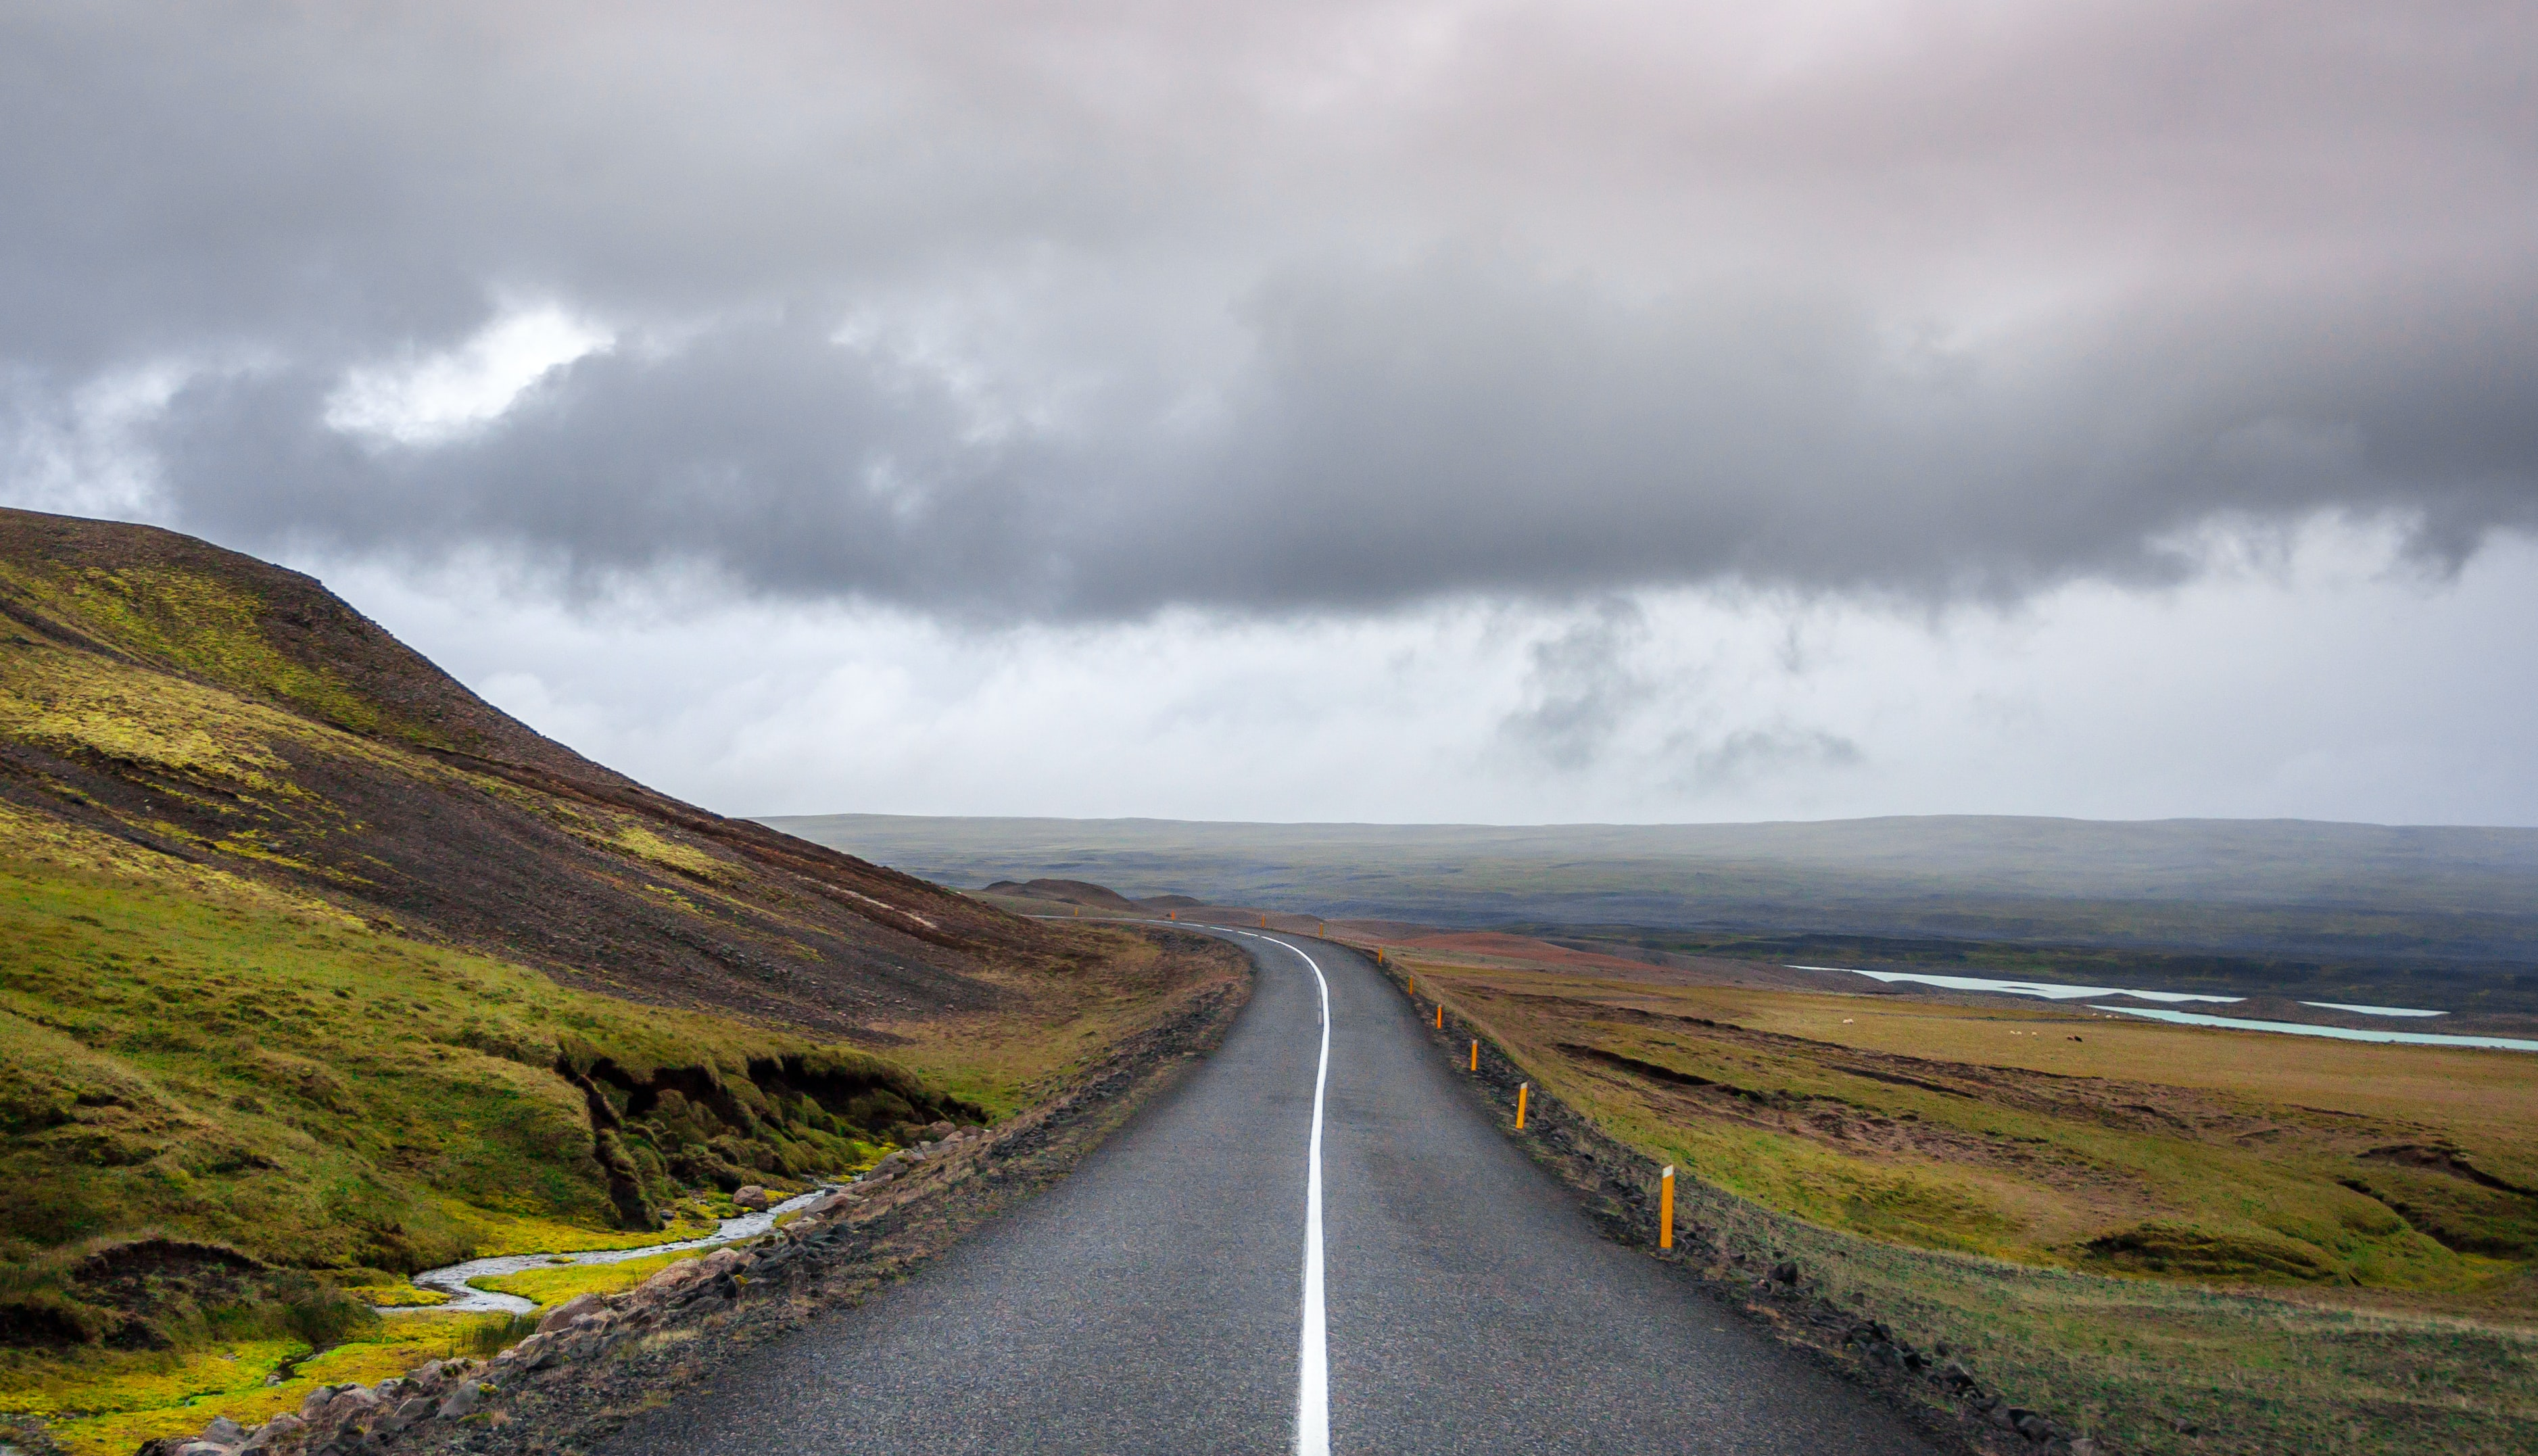 Open road leads through a rural grassy hillside on a cloudy day